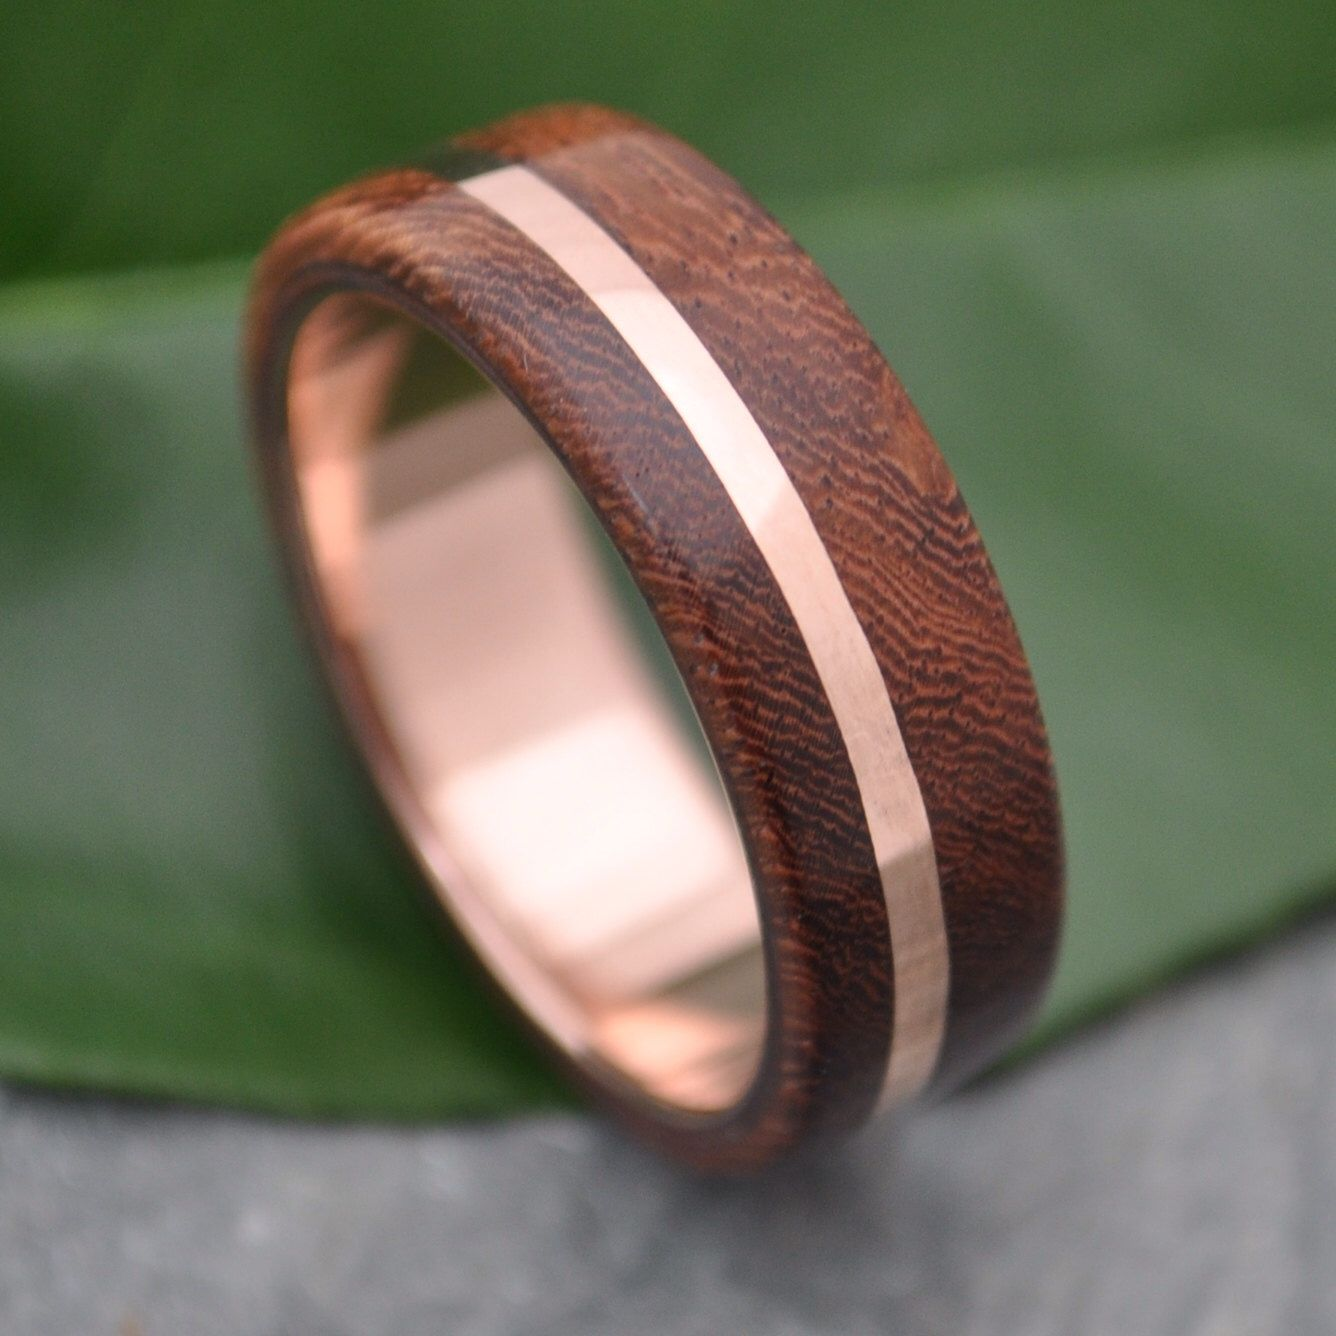 Rose Gold Wood Ring Solsticio Oro Nacascolo 14k Rose Gold Pink